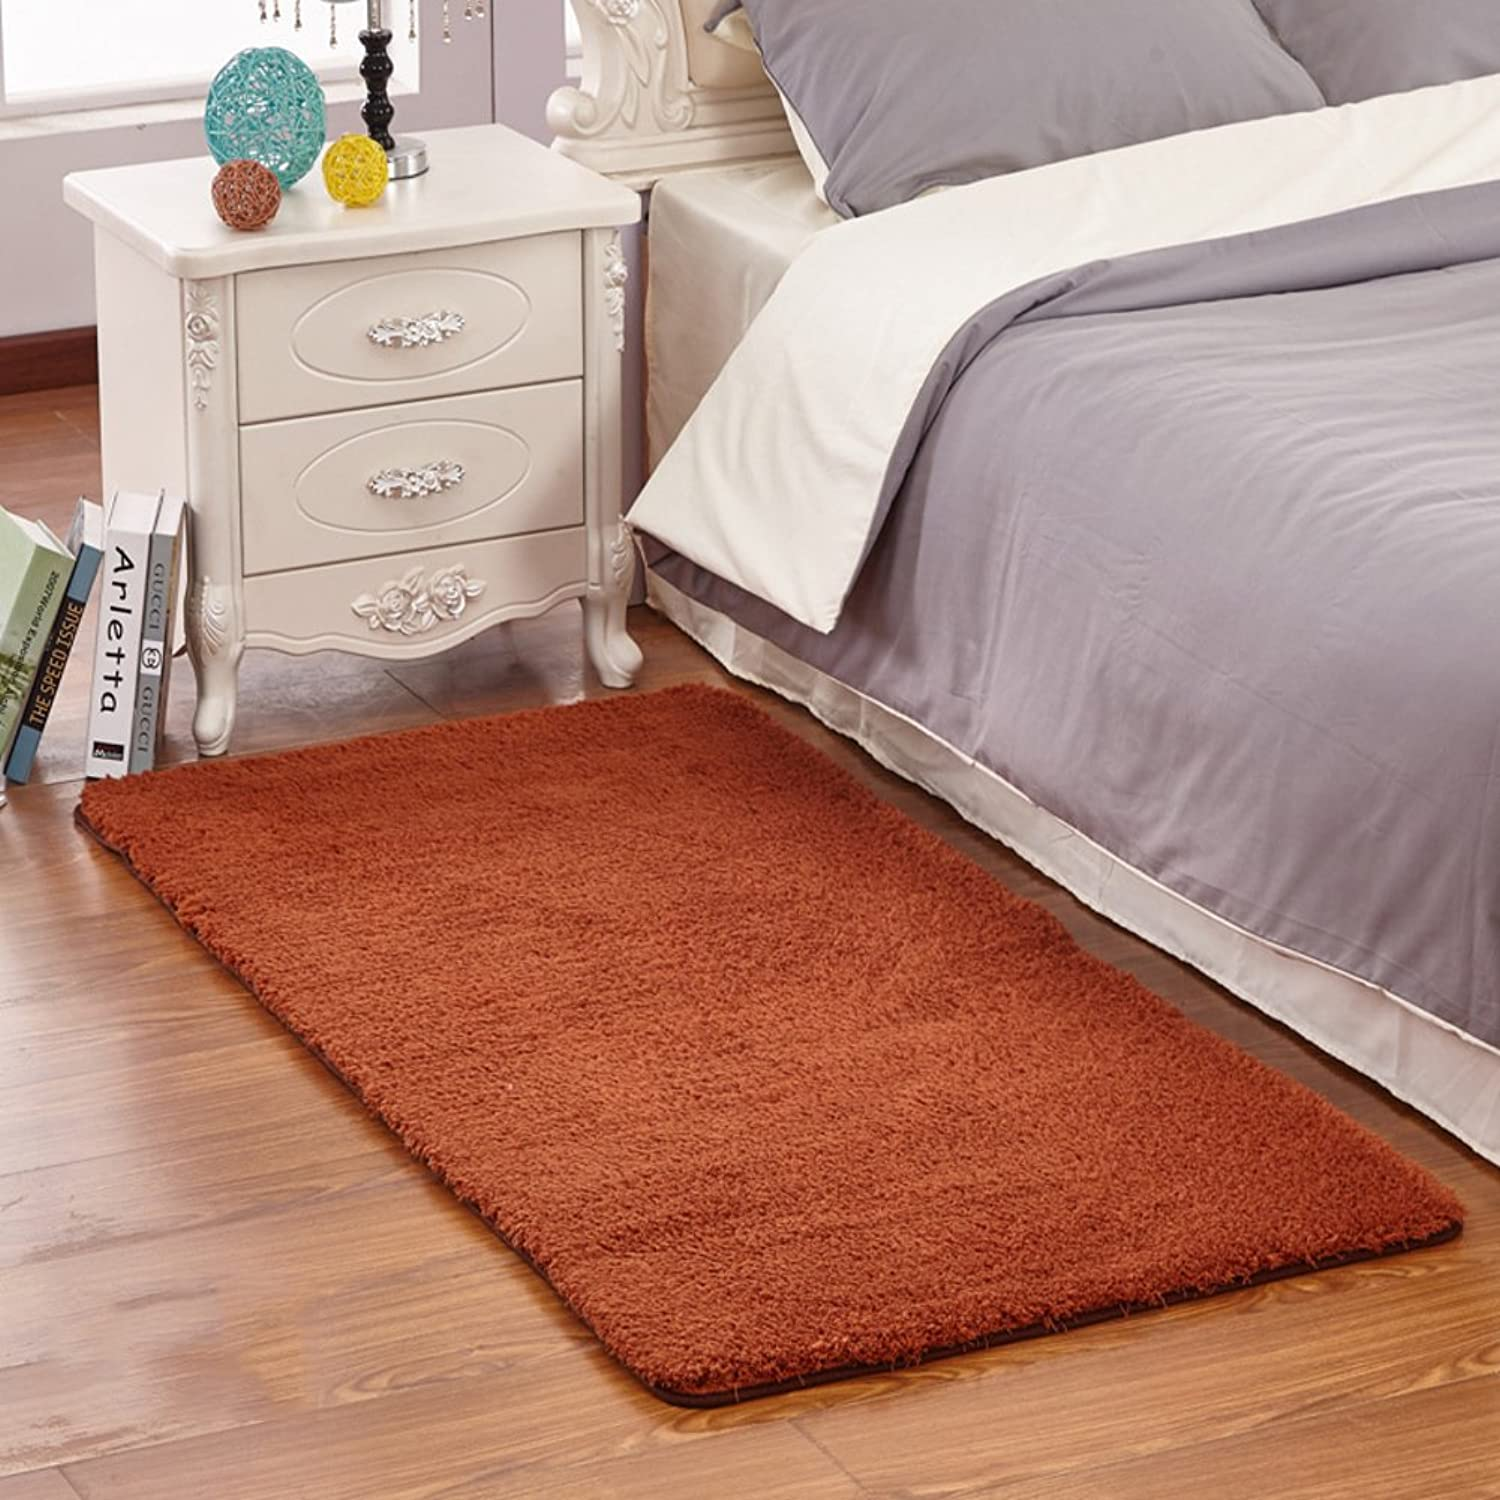 Couch mat thickening plush bedroom mat Bay window mat Room bed mat Rectangular pad-C 60x120cm(24x47inch)